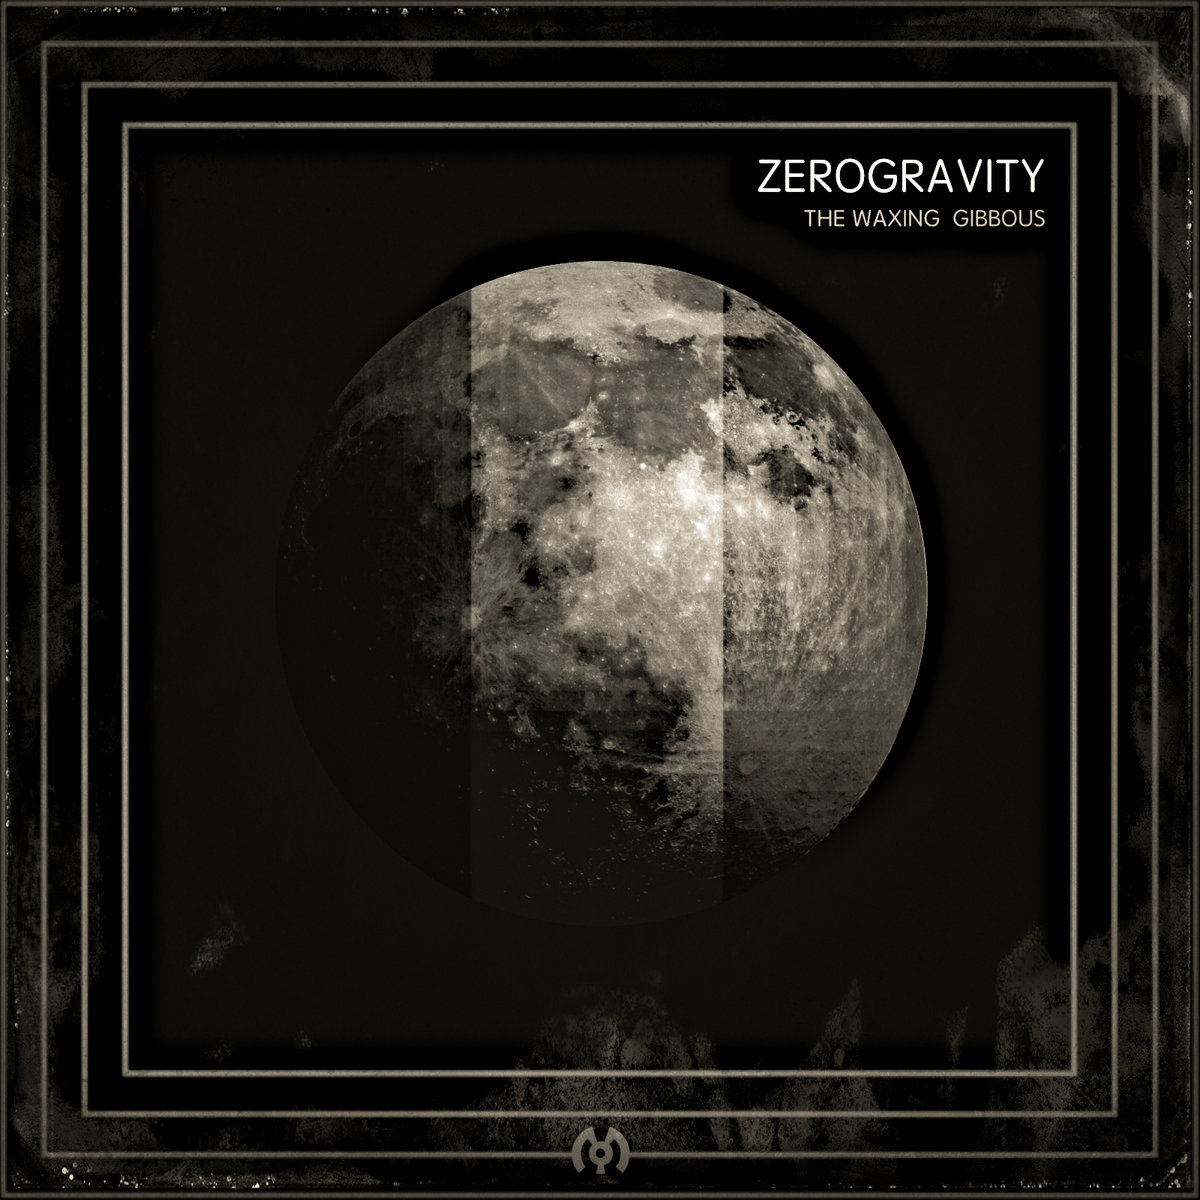 ZEROGRAVITY - Sonic Persuasion @ 'The Waxing Gibbous' album (electronic, dubstep)